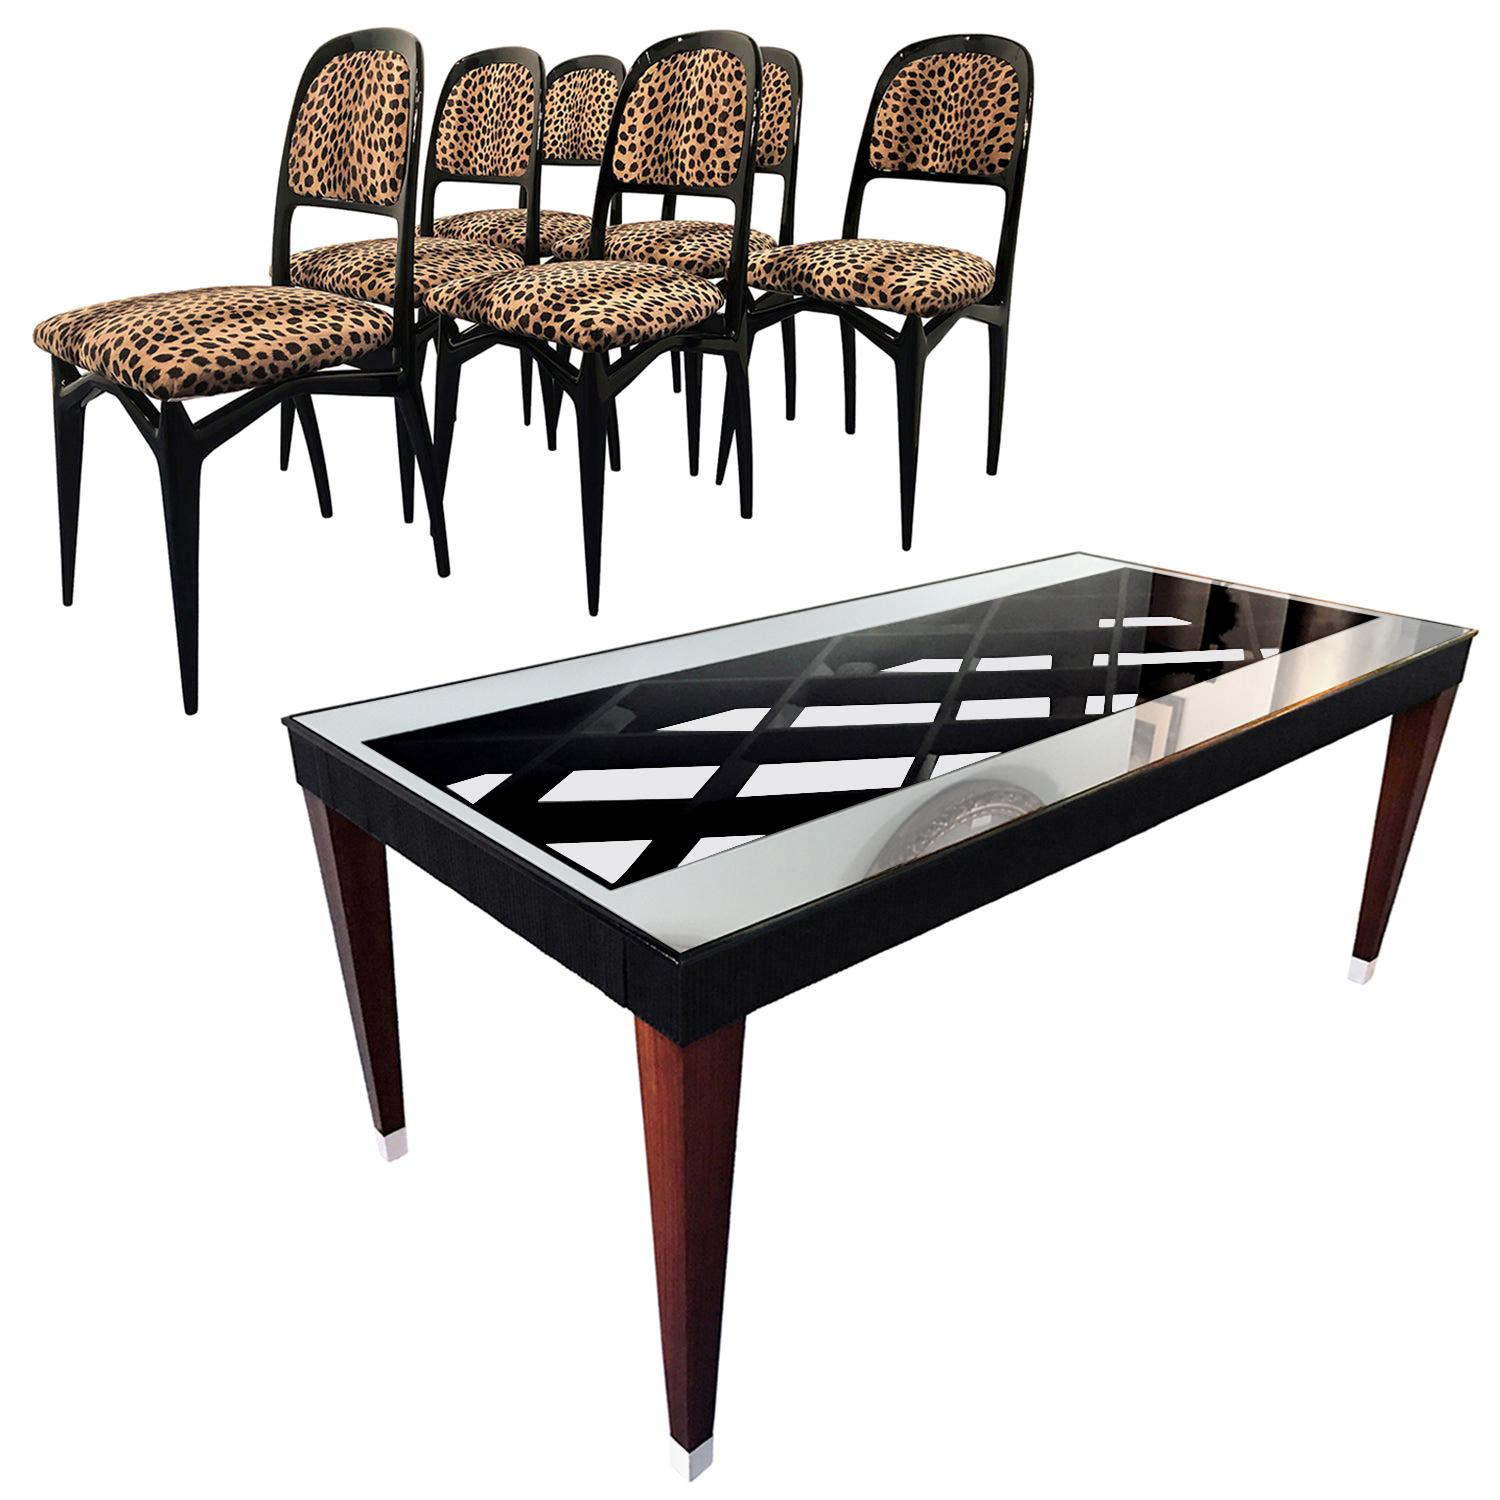 Italian Midcentury Dining Room Composed by Table with Chairs, Set of Six, 1950s